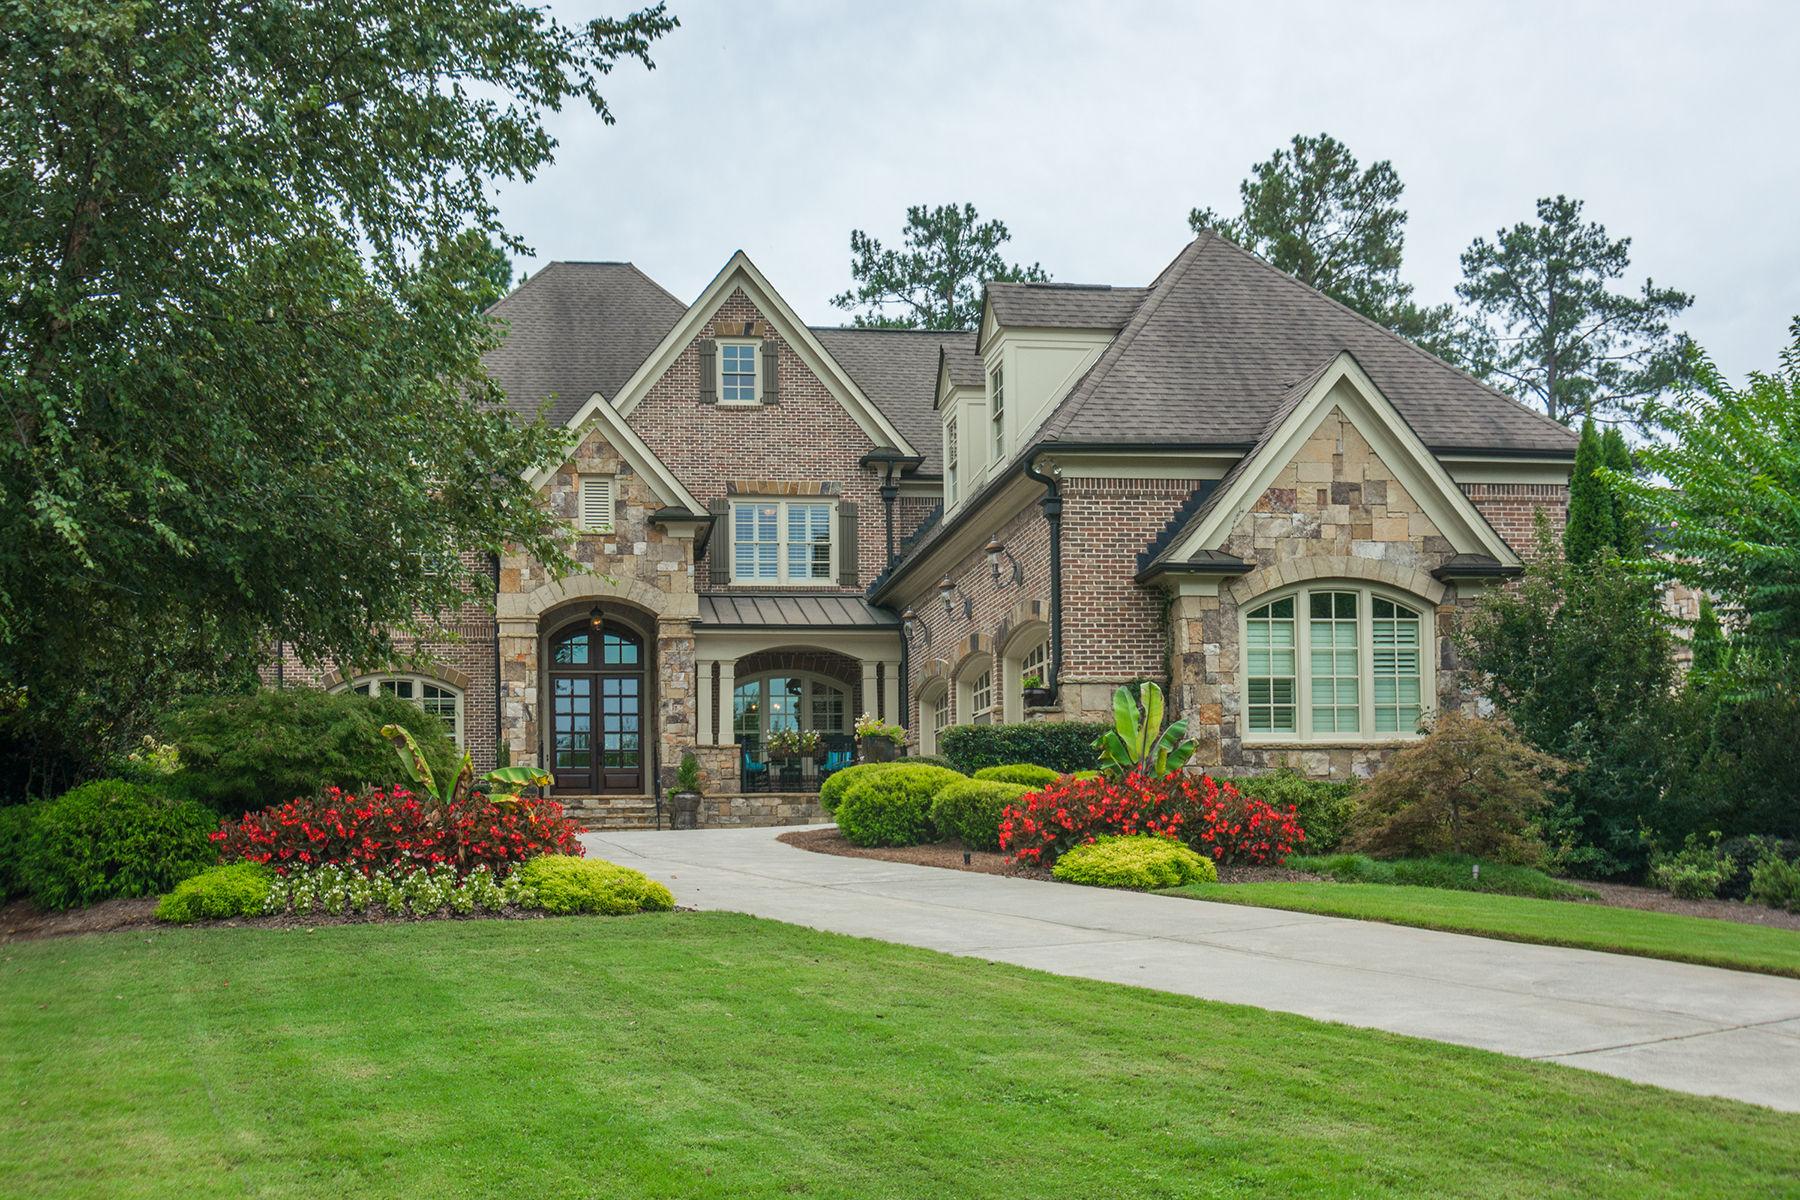 Single Family Homes のために 売買 アット Elegant Home, Country Club Setting 6327 Howell Cobb Court, Acworth, ジョージア 30101 アメリカ